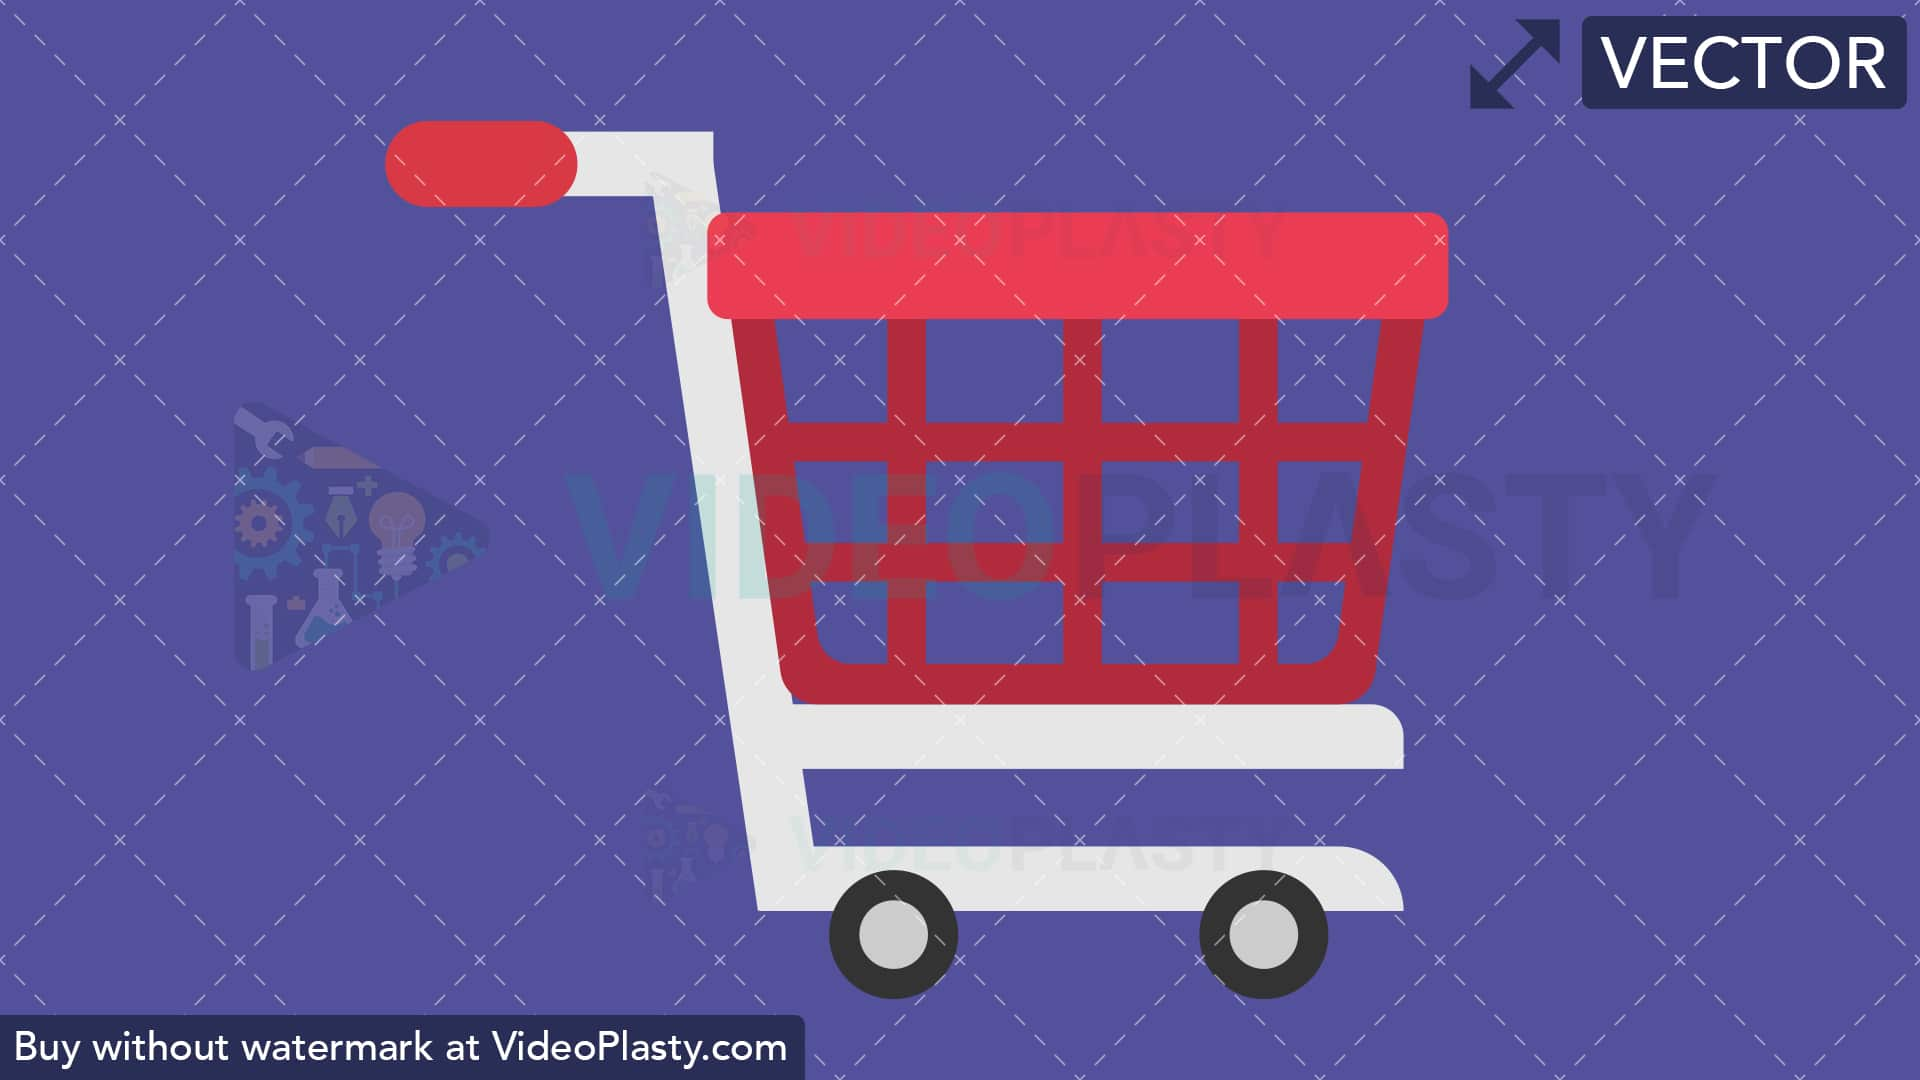 Vector clipart shopping cart graphic Shopping Cart Flat Icon [VECTOR] graphic